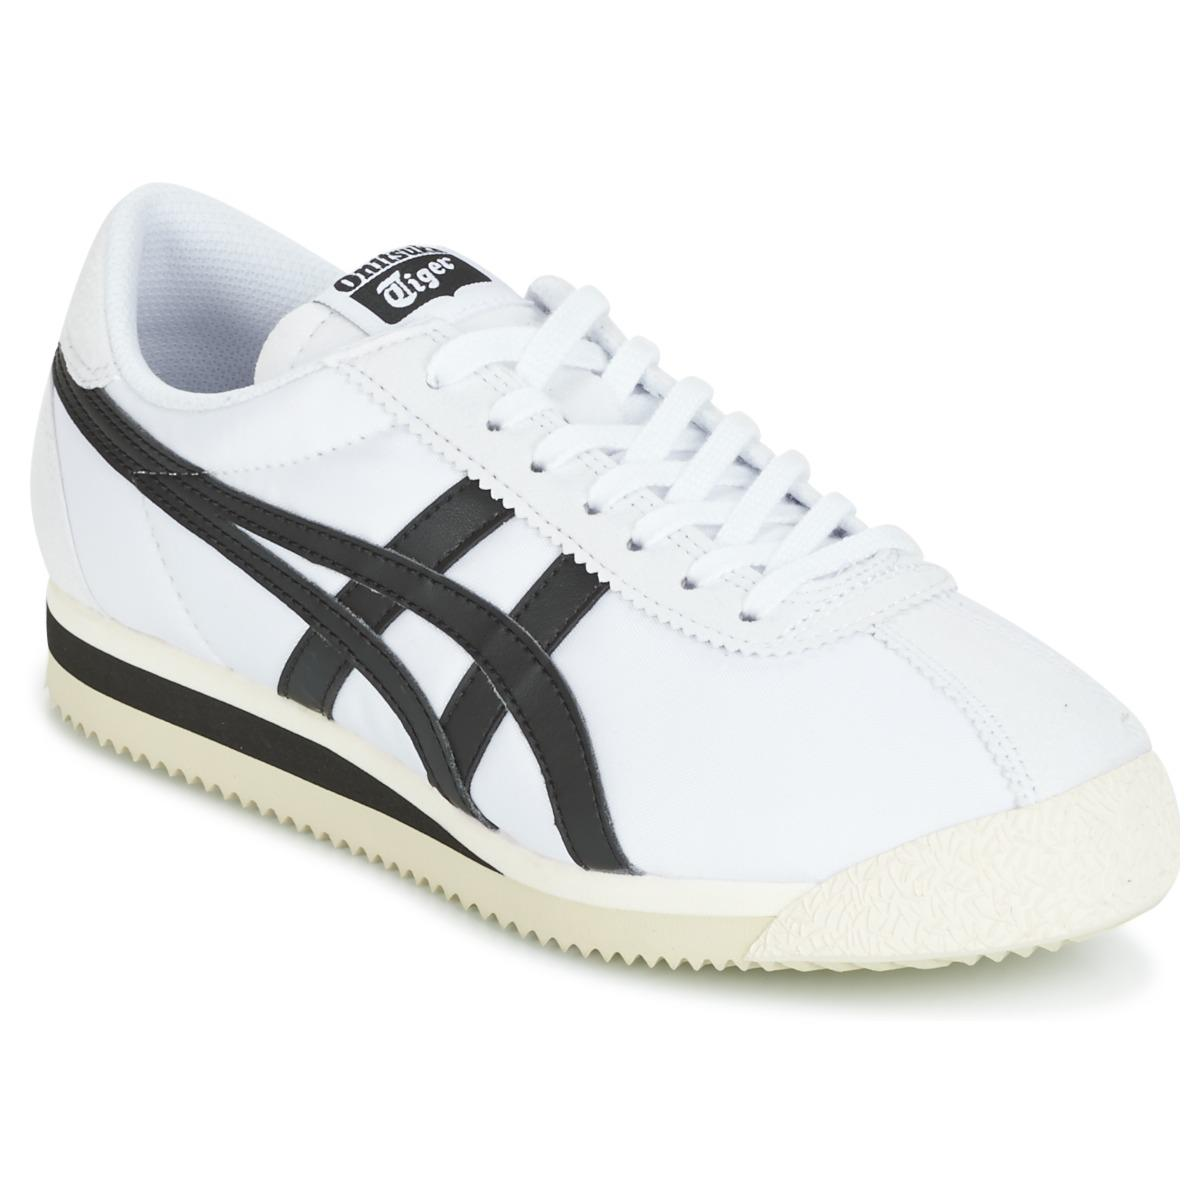 88cbe7f41b0e Onitsuka Tiger Tiger Corsair Shoes (trainers) in White - Lyst